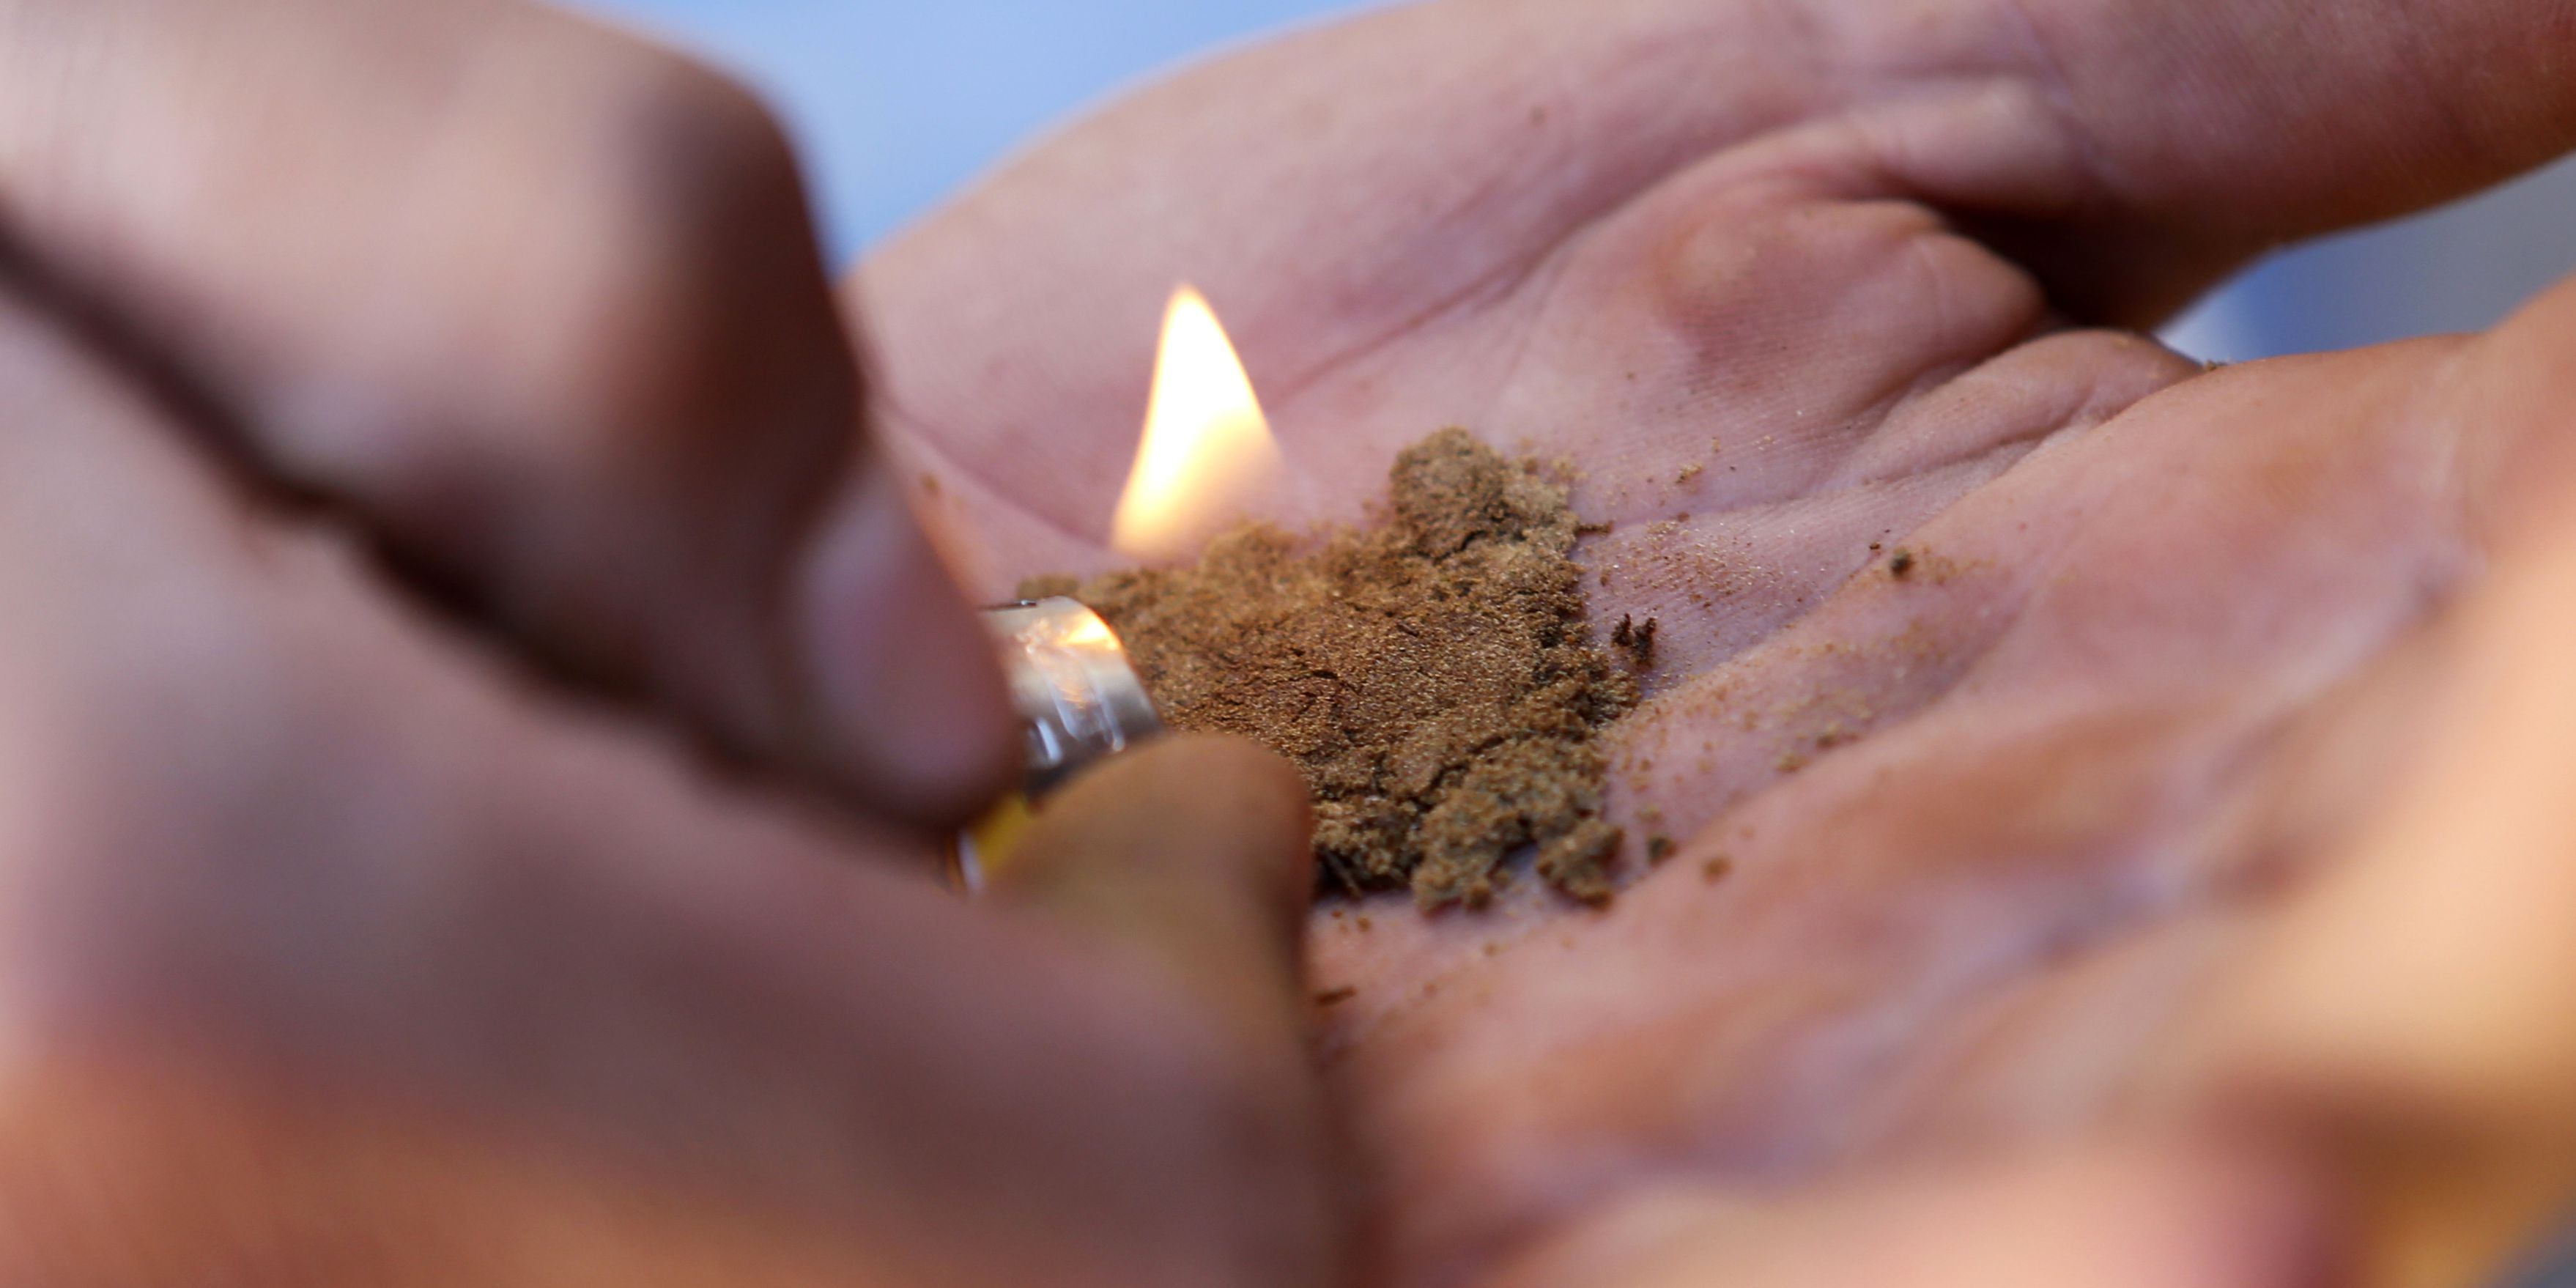 Fecal matter found in majority of street cannabis in Spanish city, study says